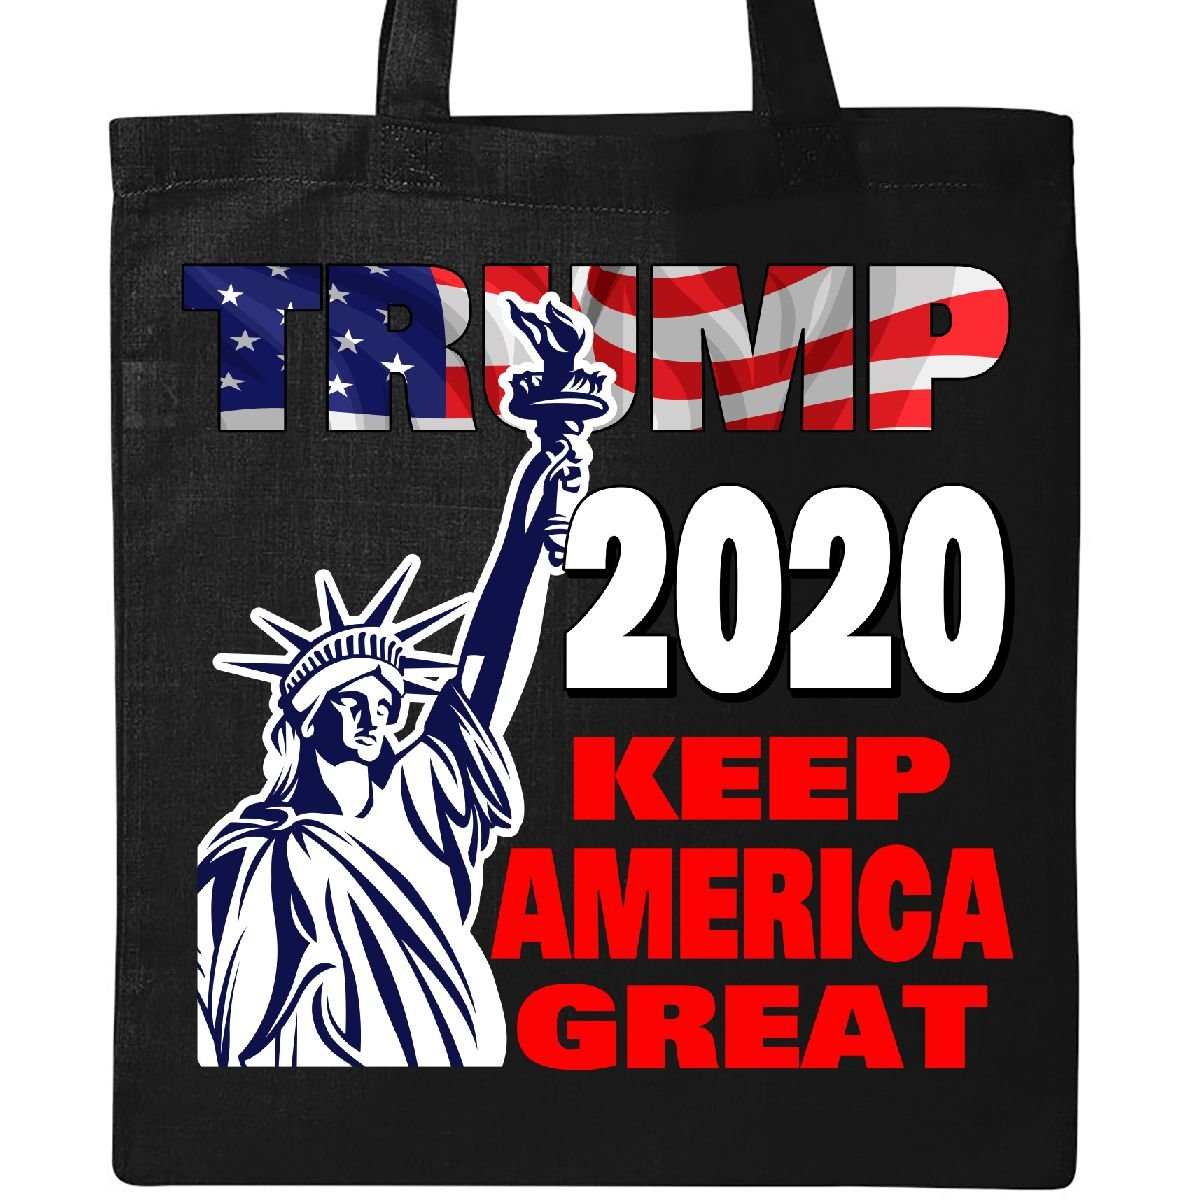 Inktastic - Trump 2020 Keep America Great Tote Bag Black 31618